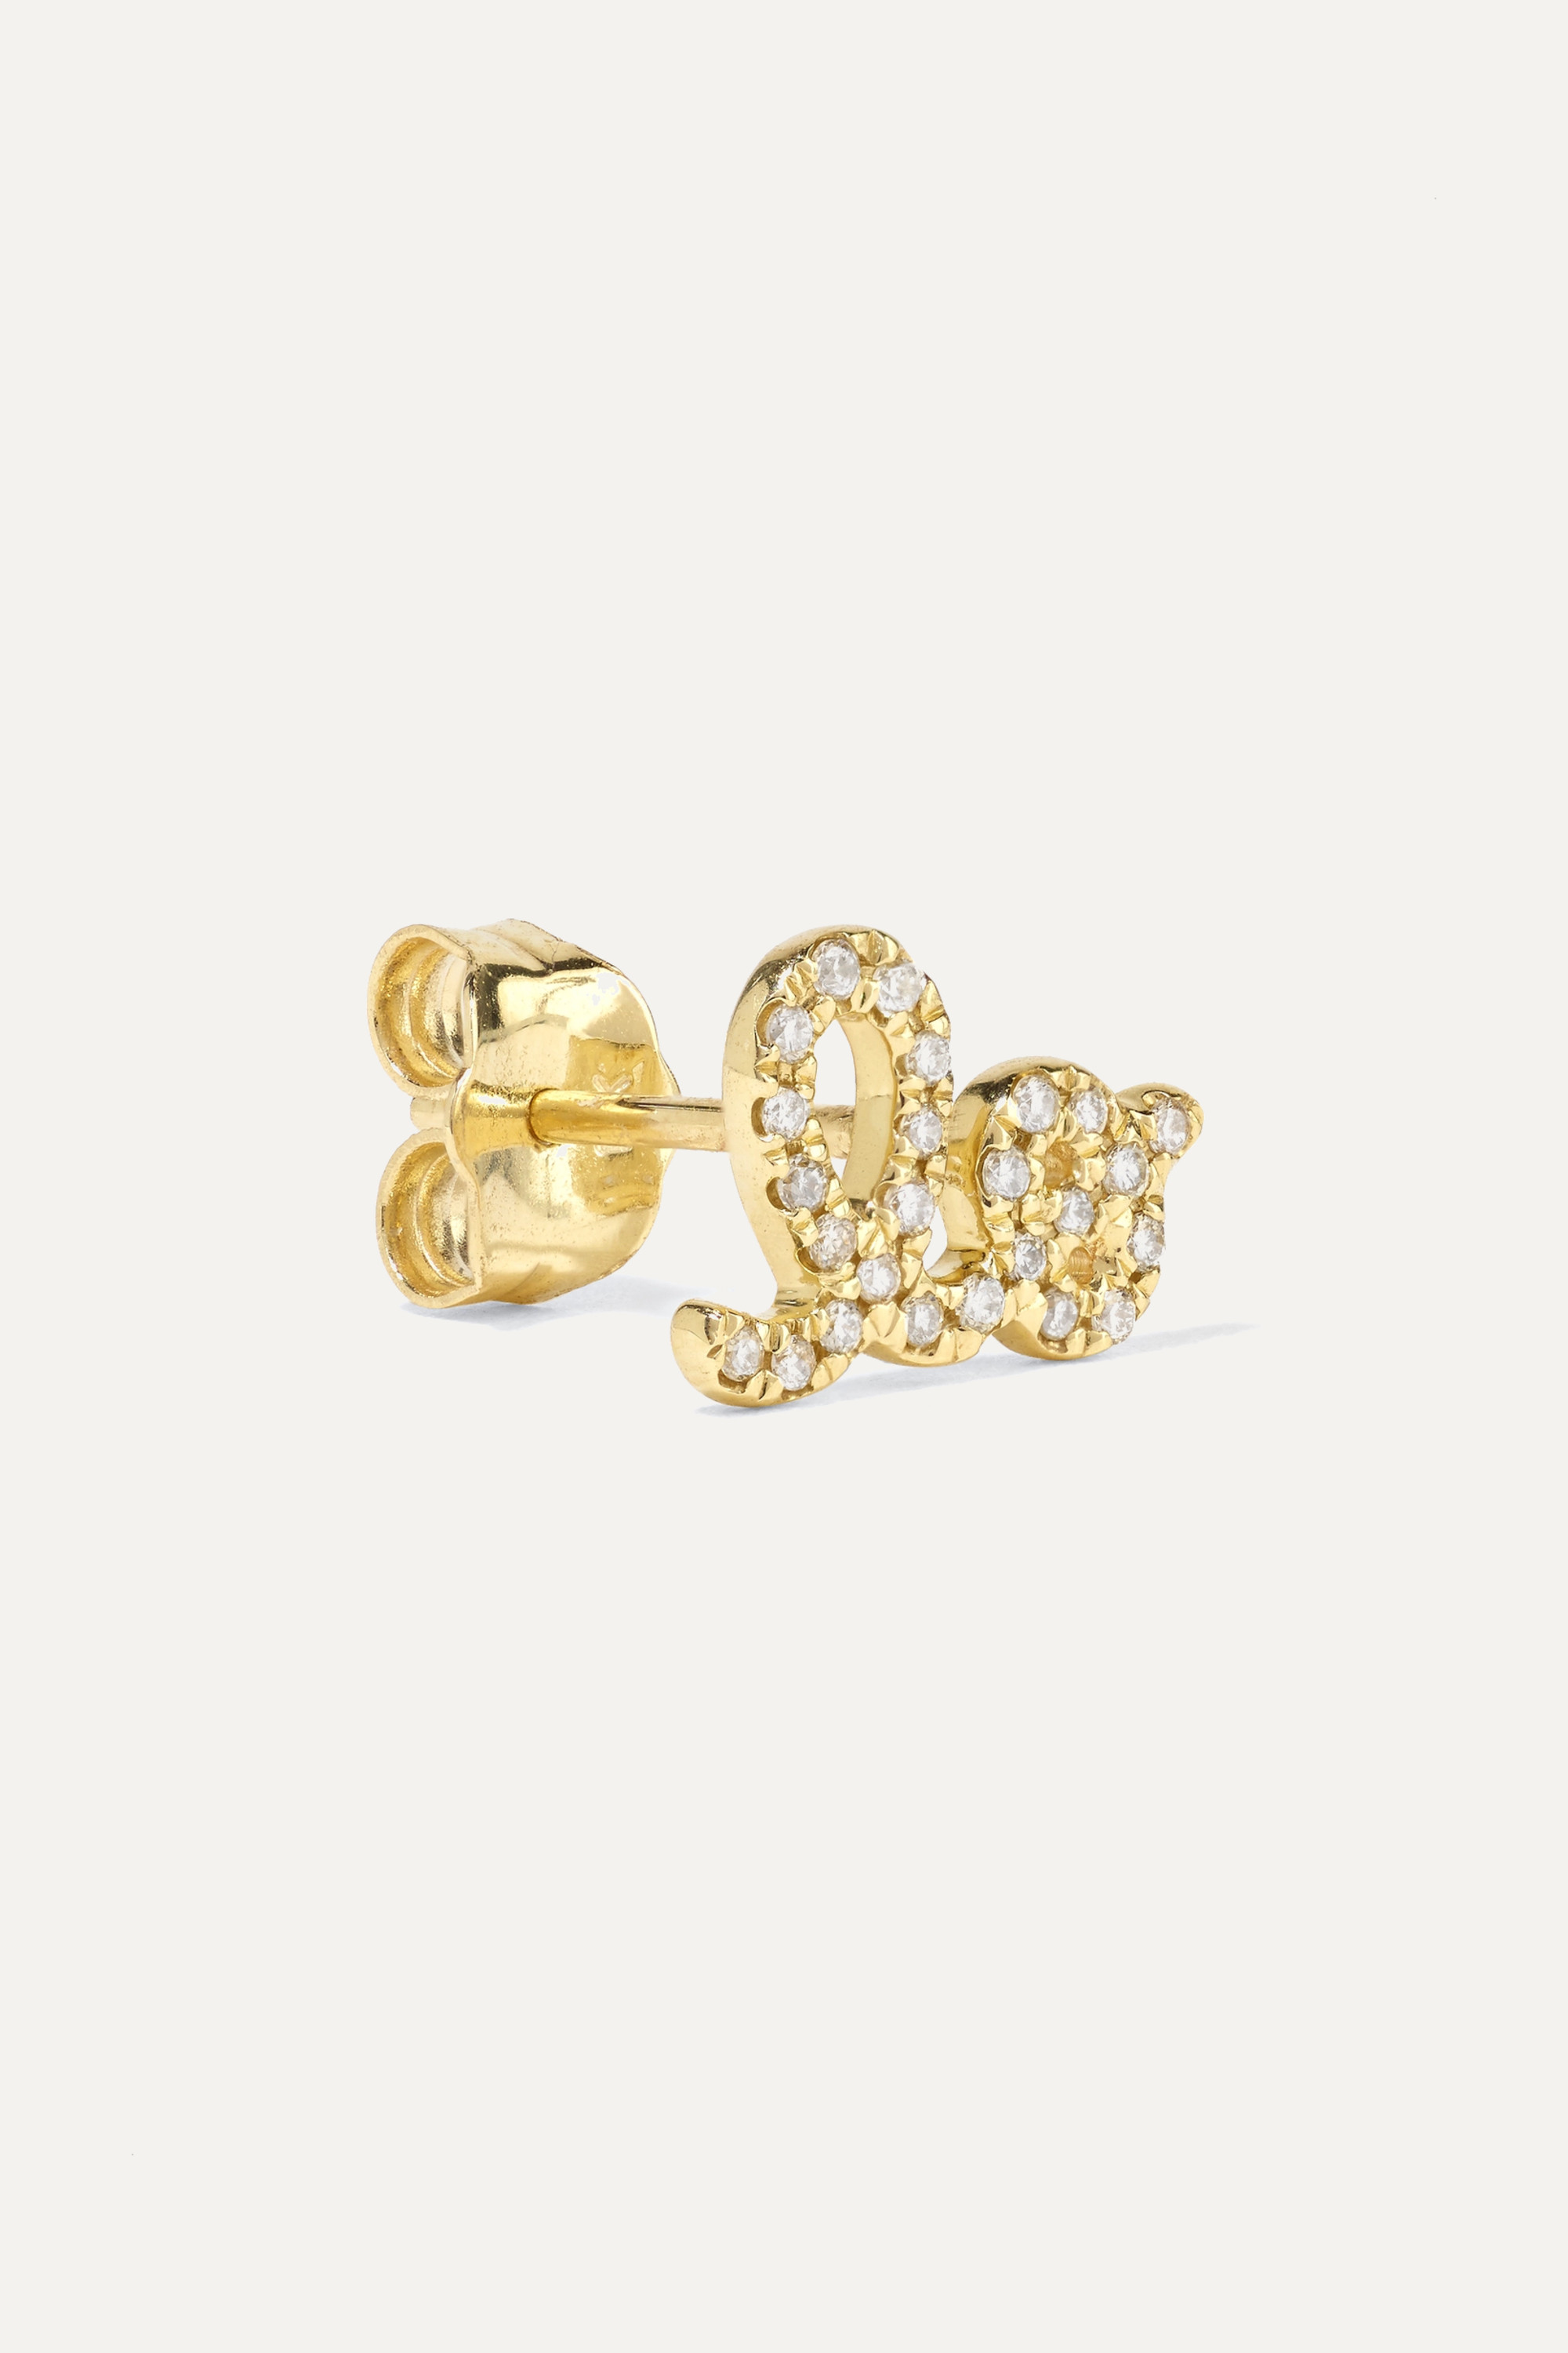 Sydney Evan Love 14-karat gold diamond earrings